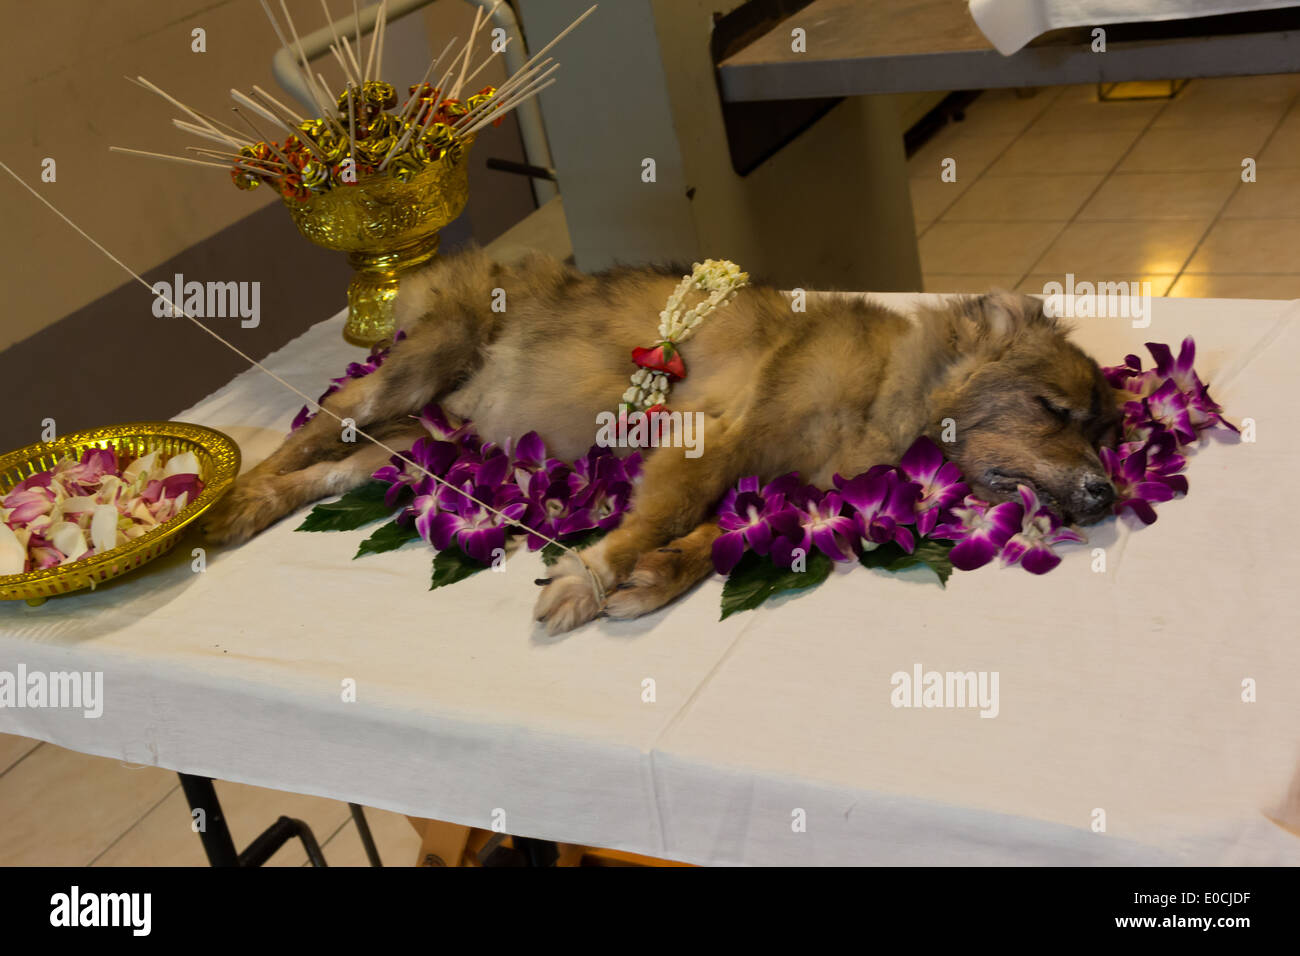 Dog funeral stock photos dog funeral stock images alamy dog funeral ceremonyrest in peace stock image izmirmasajfo